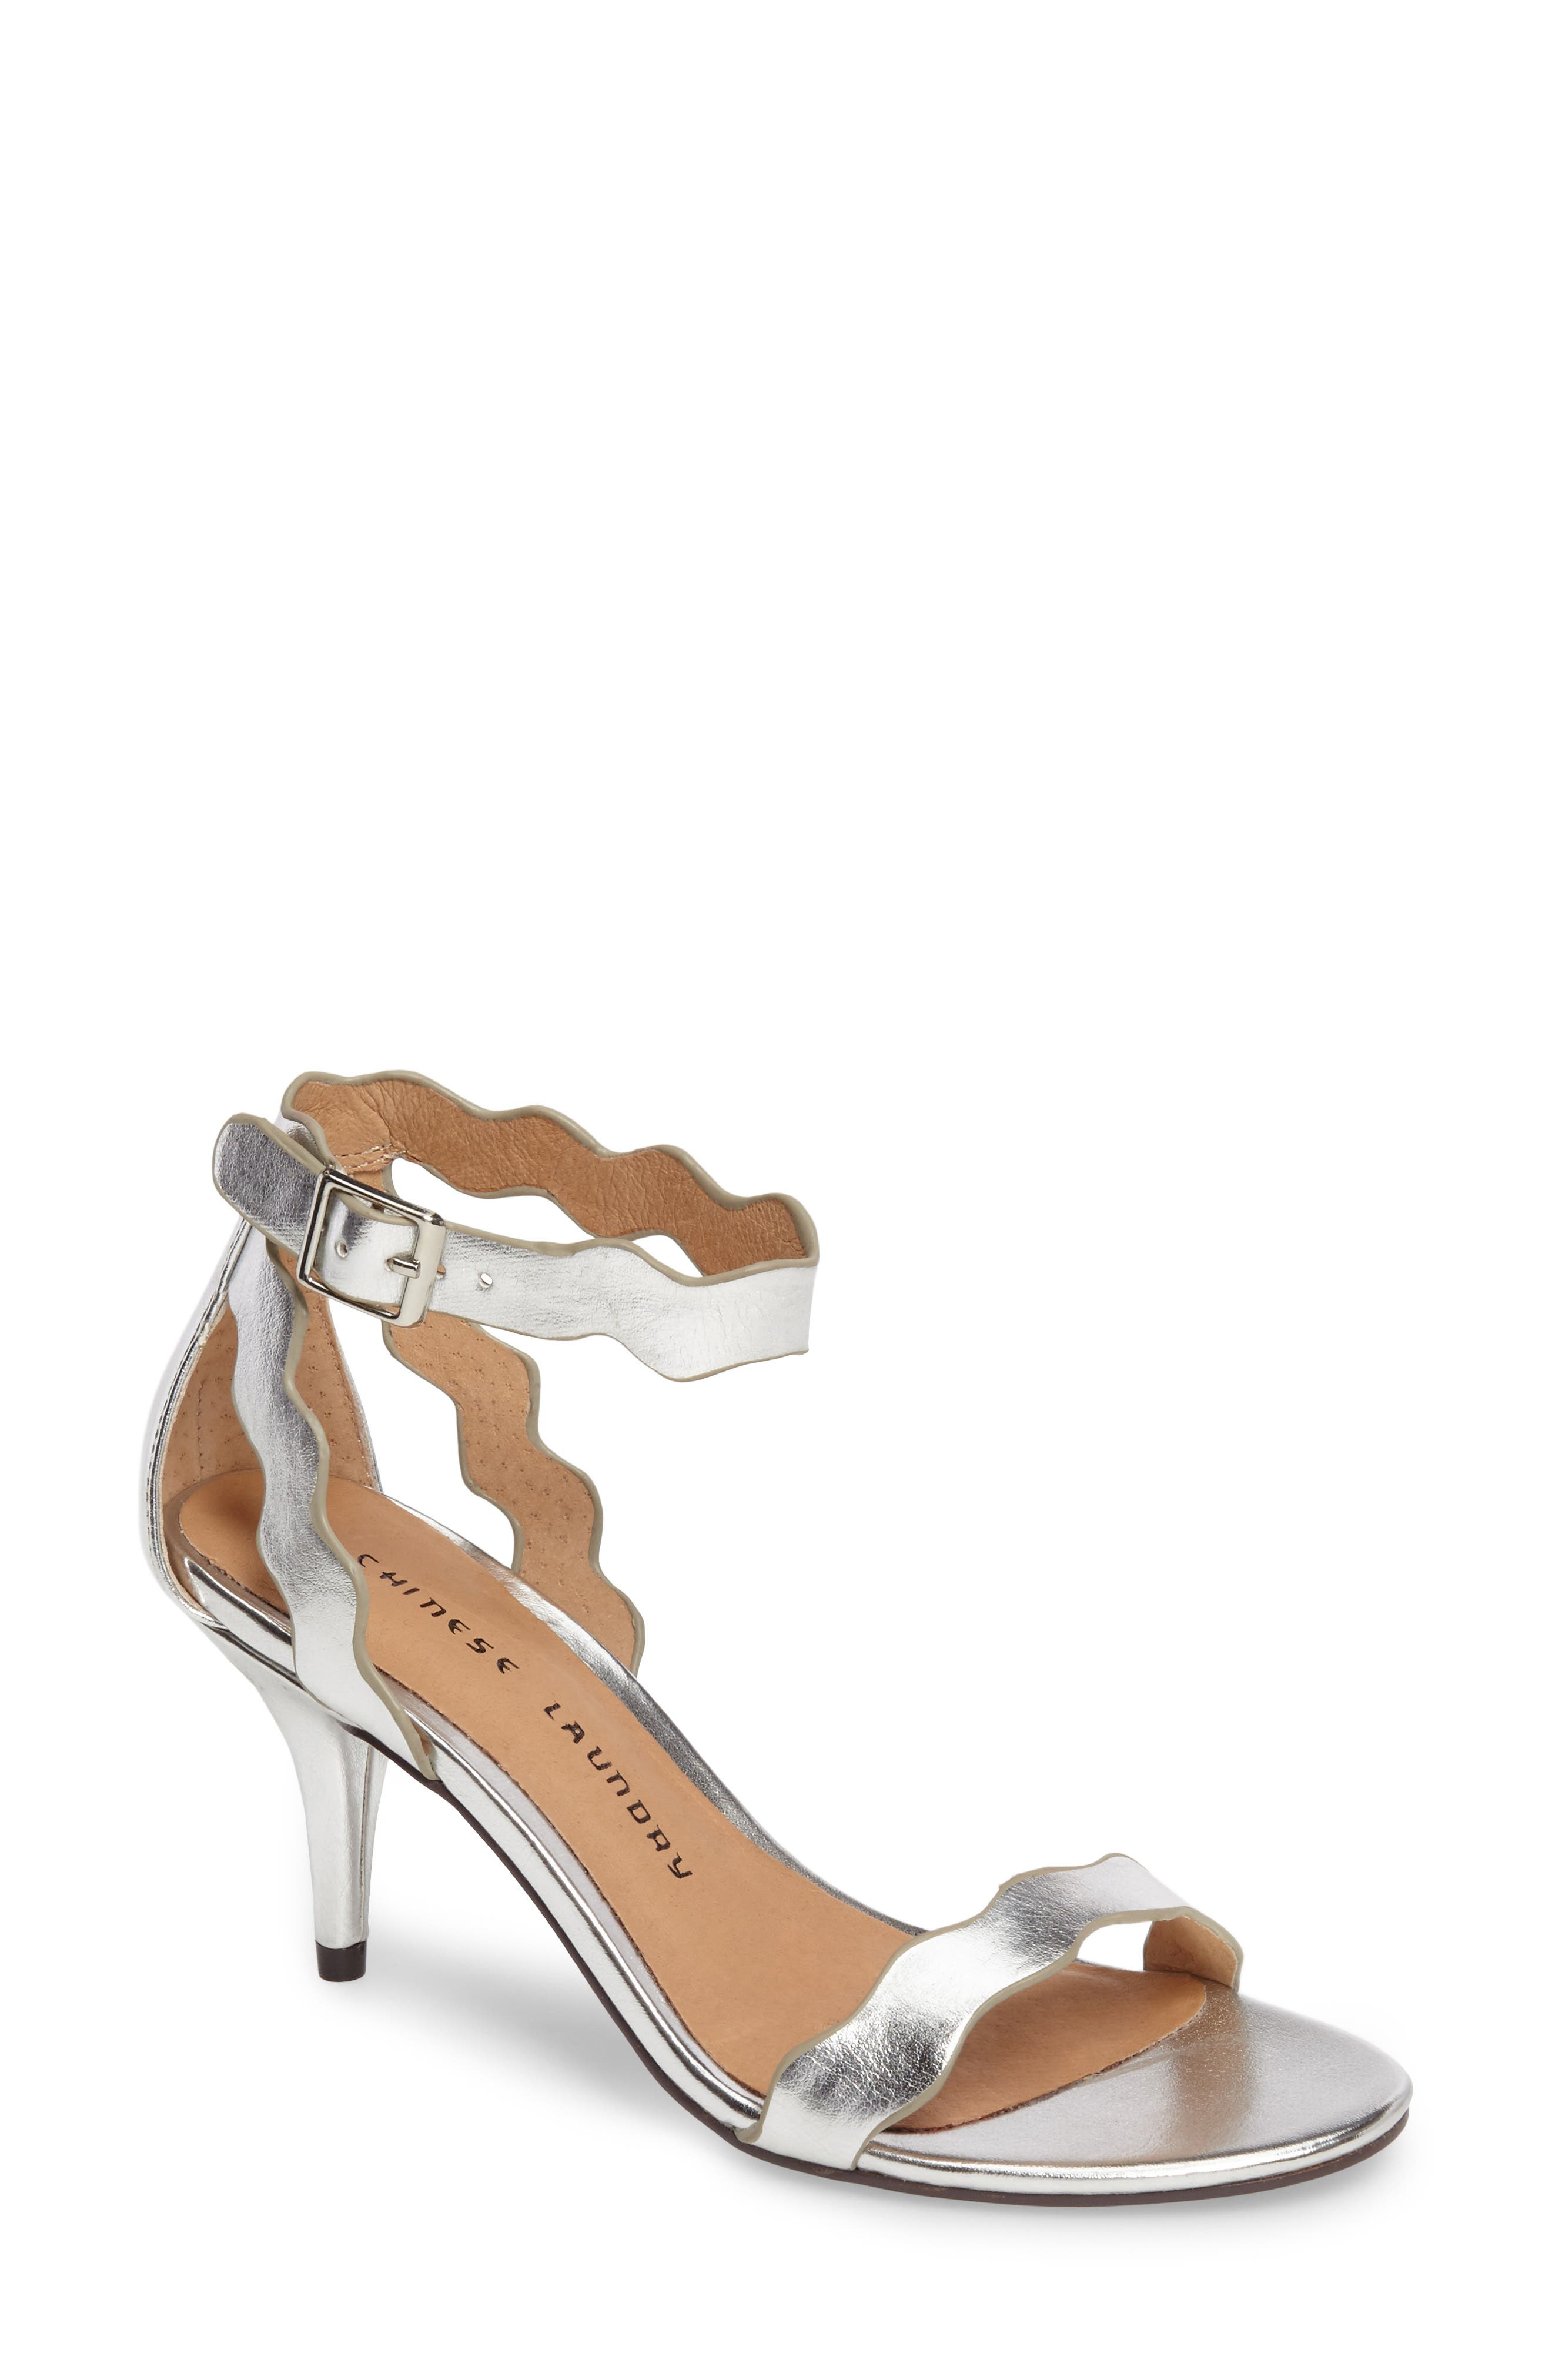 'Rubie' Scalloped Ankle Strap Sandal,                         Main,                         color, 040